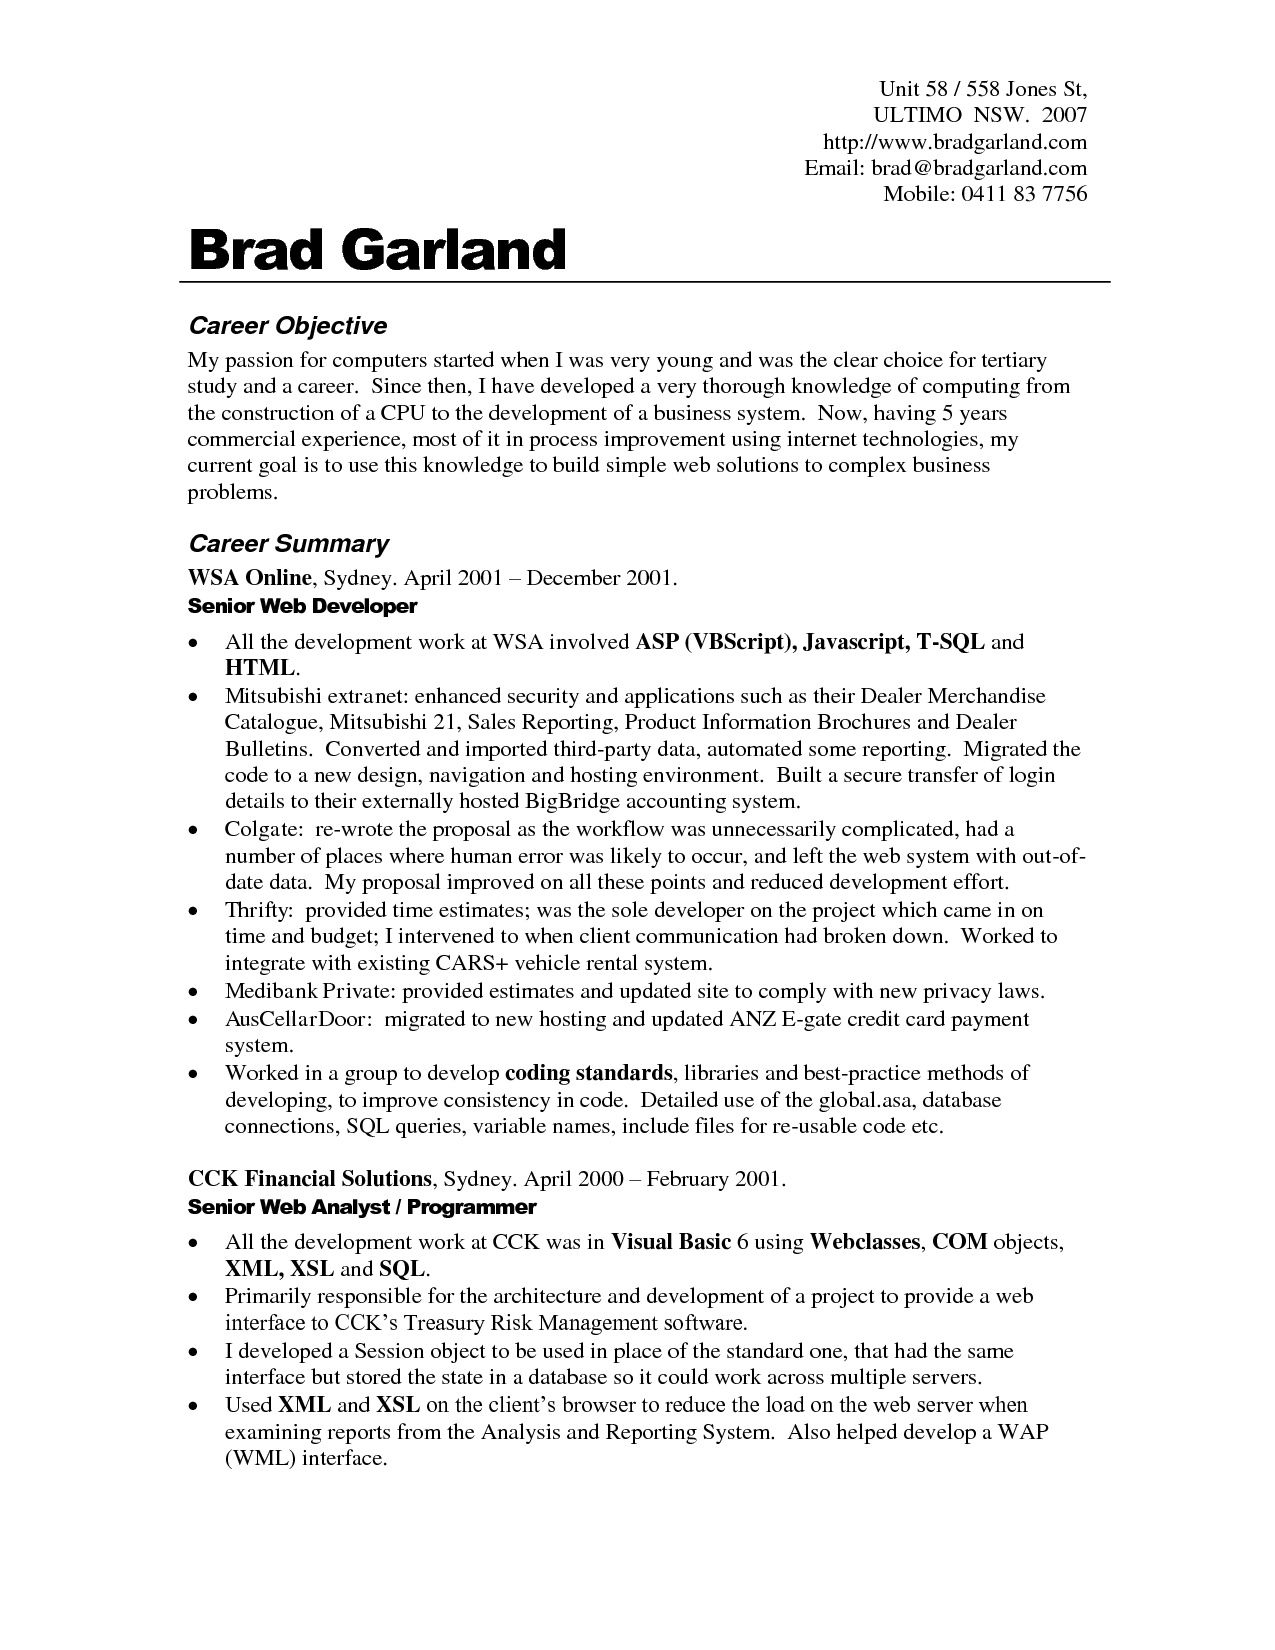 career objective resume examples for example your training